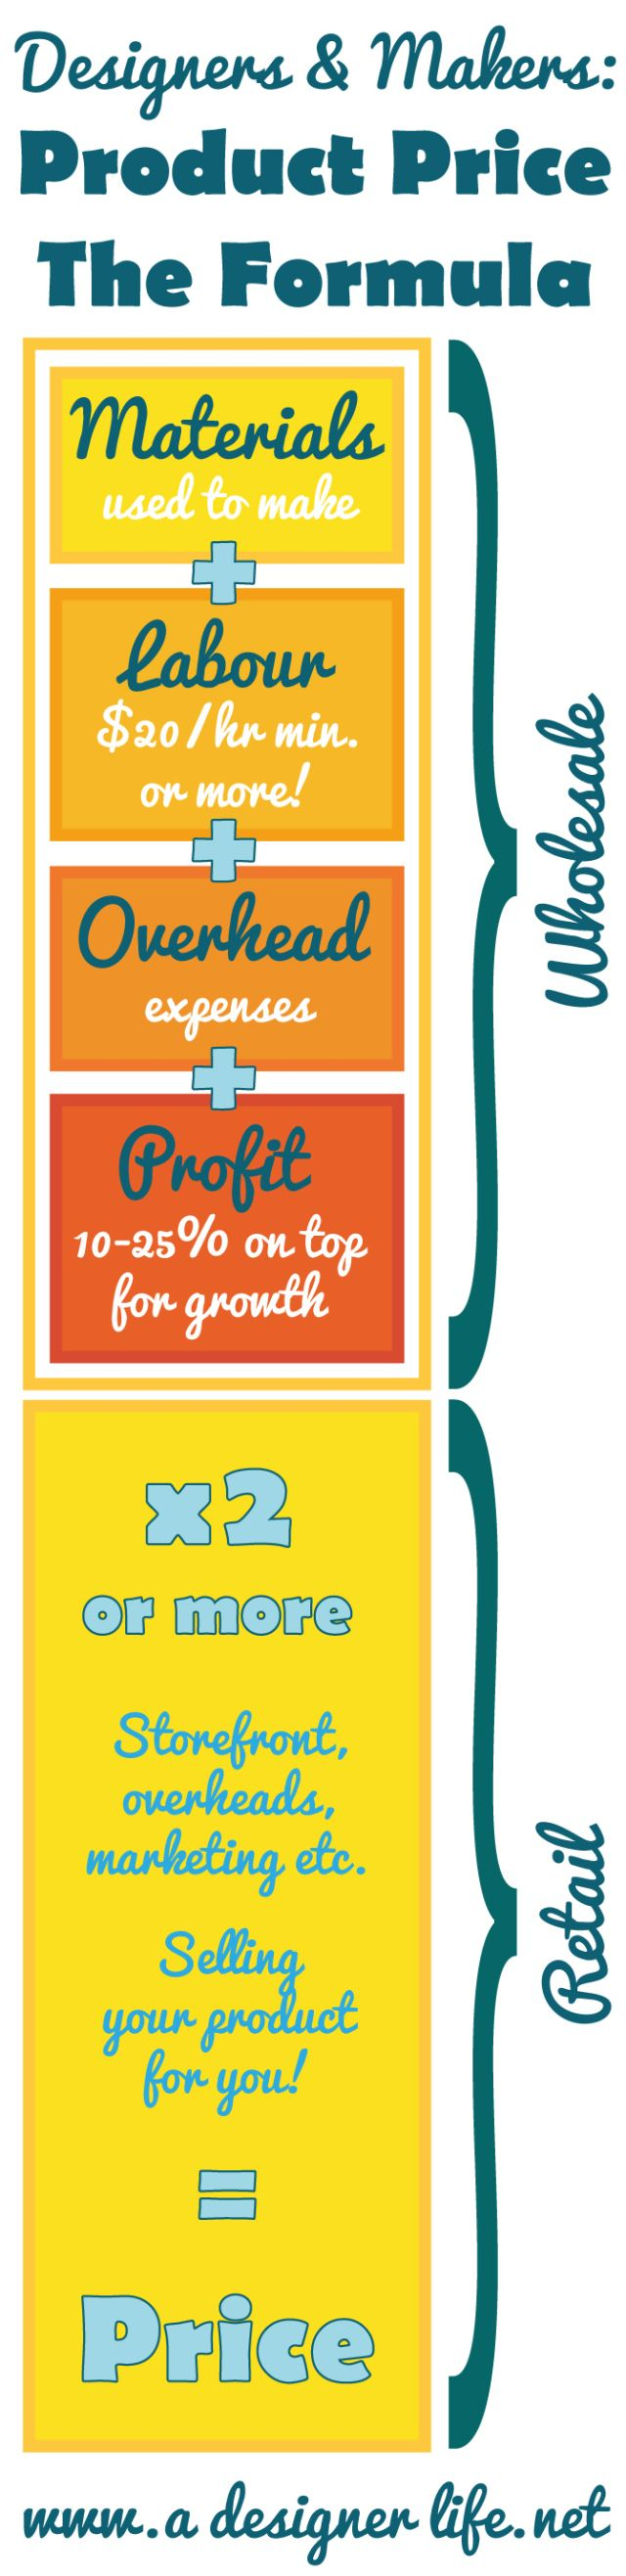 "The ultimate formula for product pricing for designers and makers. Wow! Graphic by Jessica Lea Dunn based on a podcast of Elise Gets Crafty by Elise Joy. ""This is the kind of MBA-quality wisdom you usually would have to pay big dollars for in consulting fees. You can listen to the full episode on iTunes here or stream it from your computer here. Just look for Episode 28 featuring an interview with Tara Gentile."""